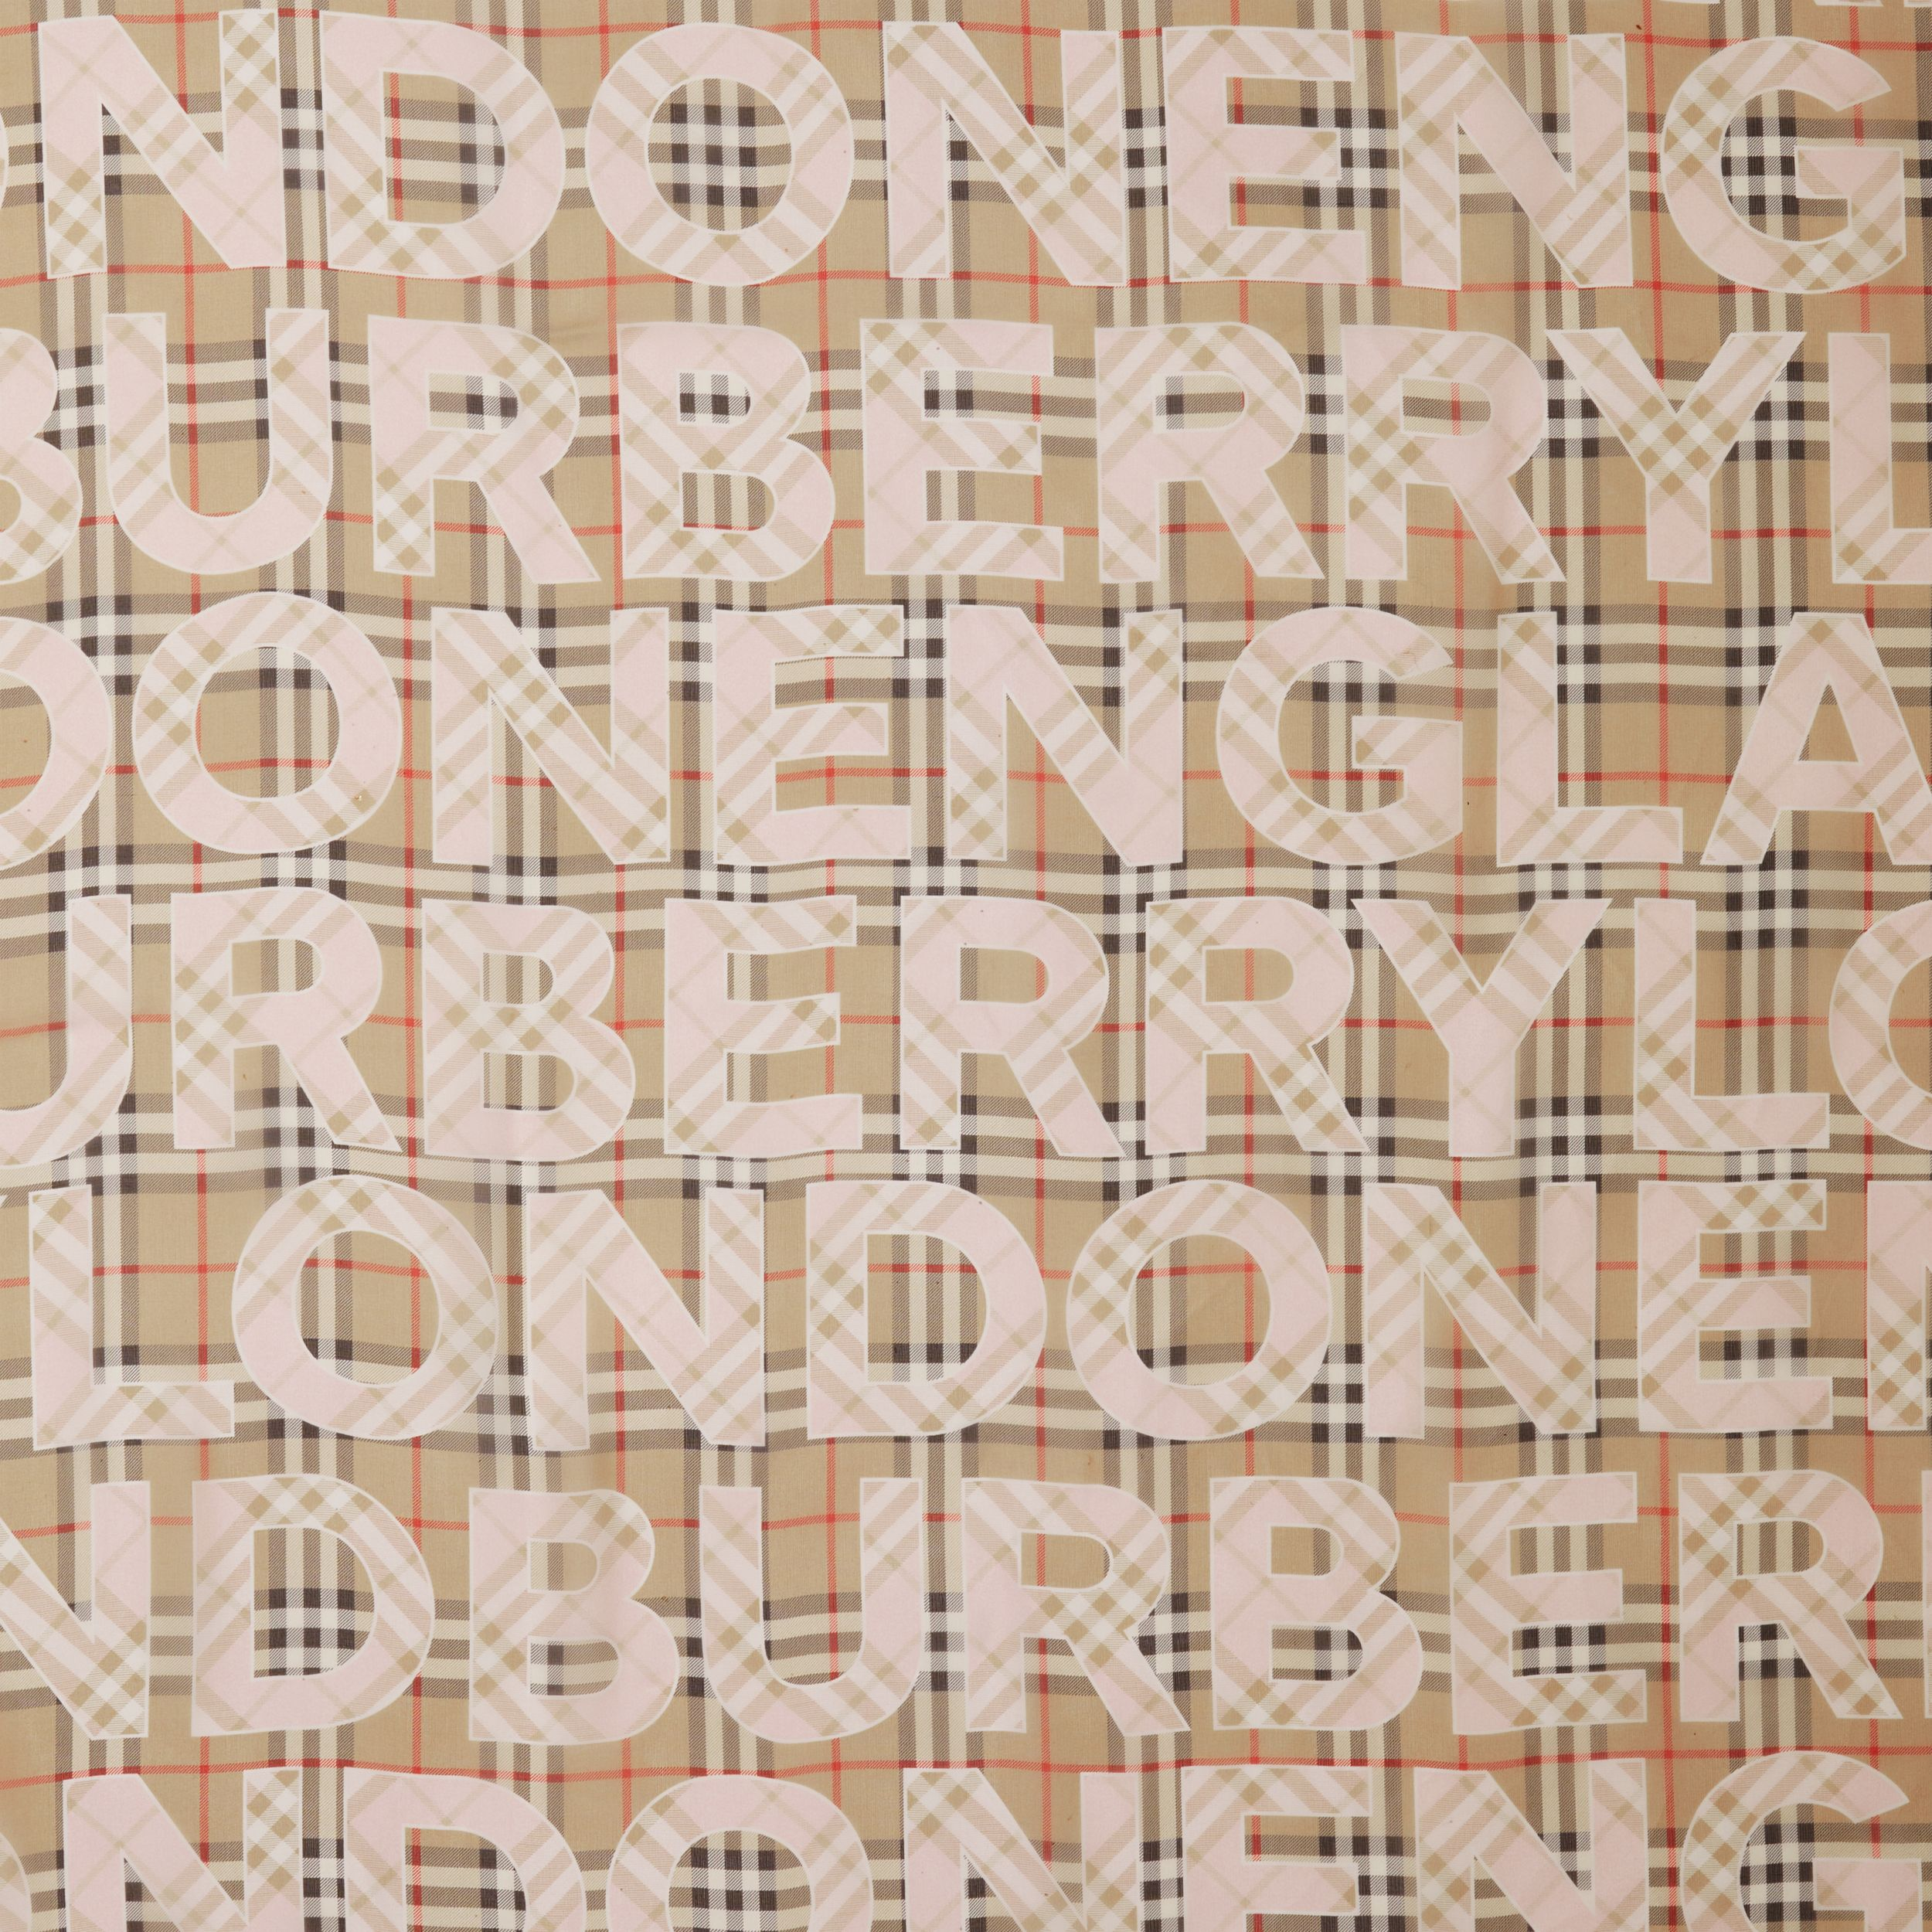 Vintage Check Logo Print Silk Chiffon Scarf in Alabaster Pink | Burberry - 2